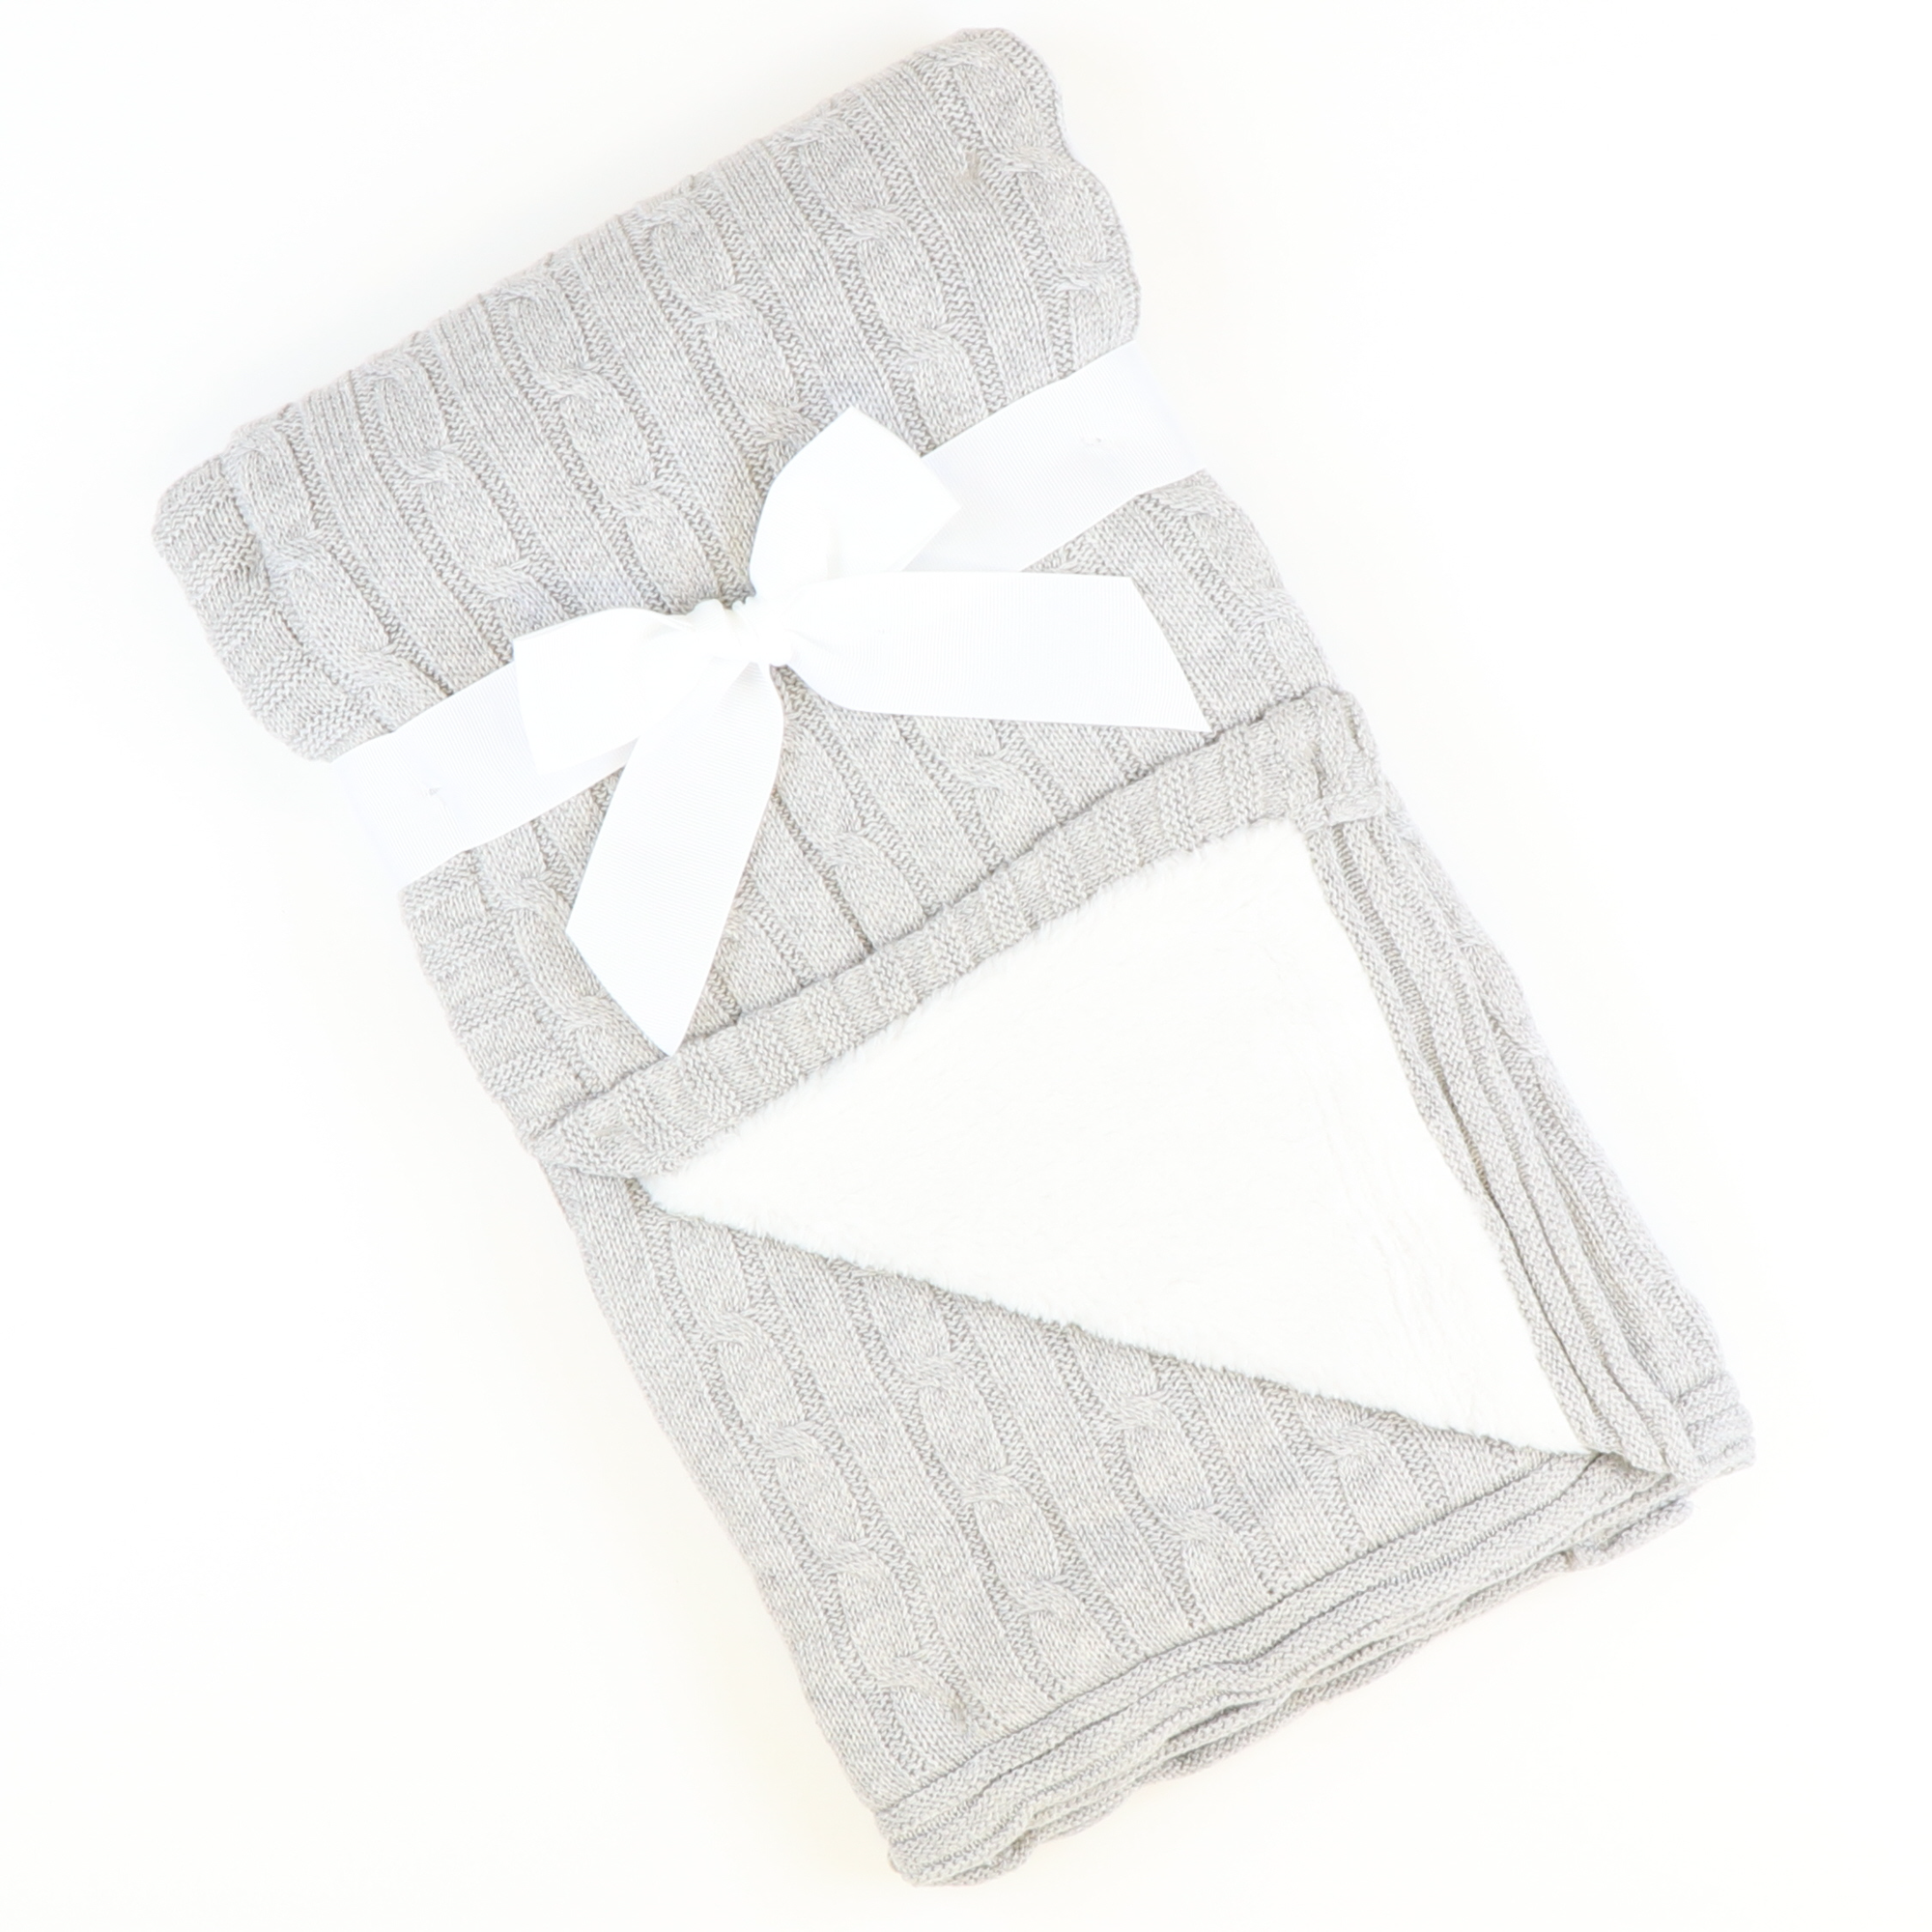 Cable Knit Sherpa Blanket - Gray